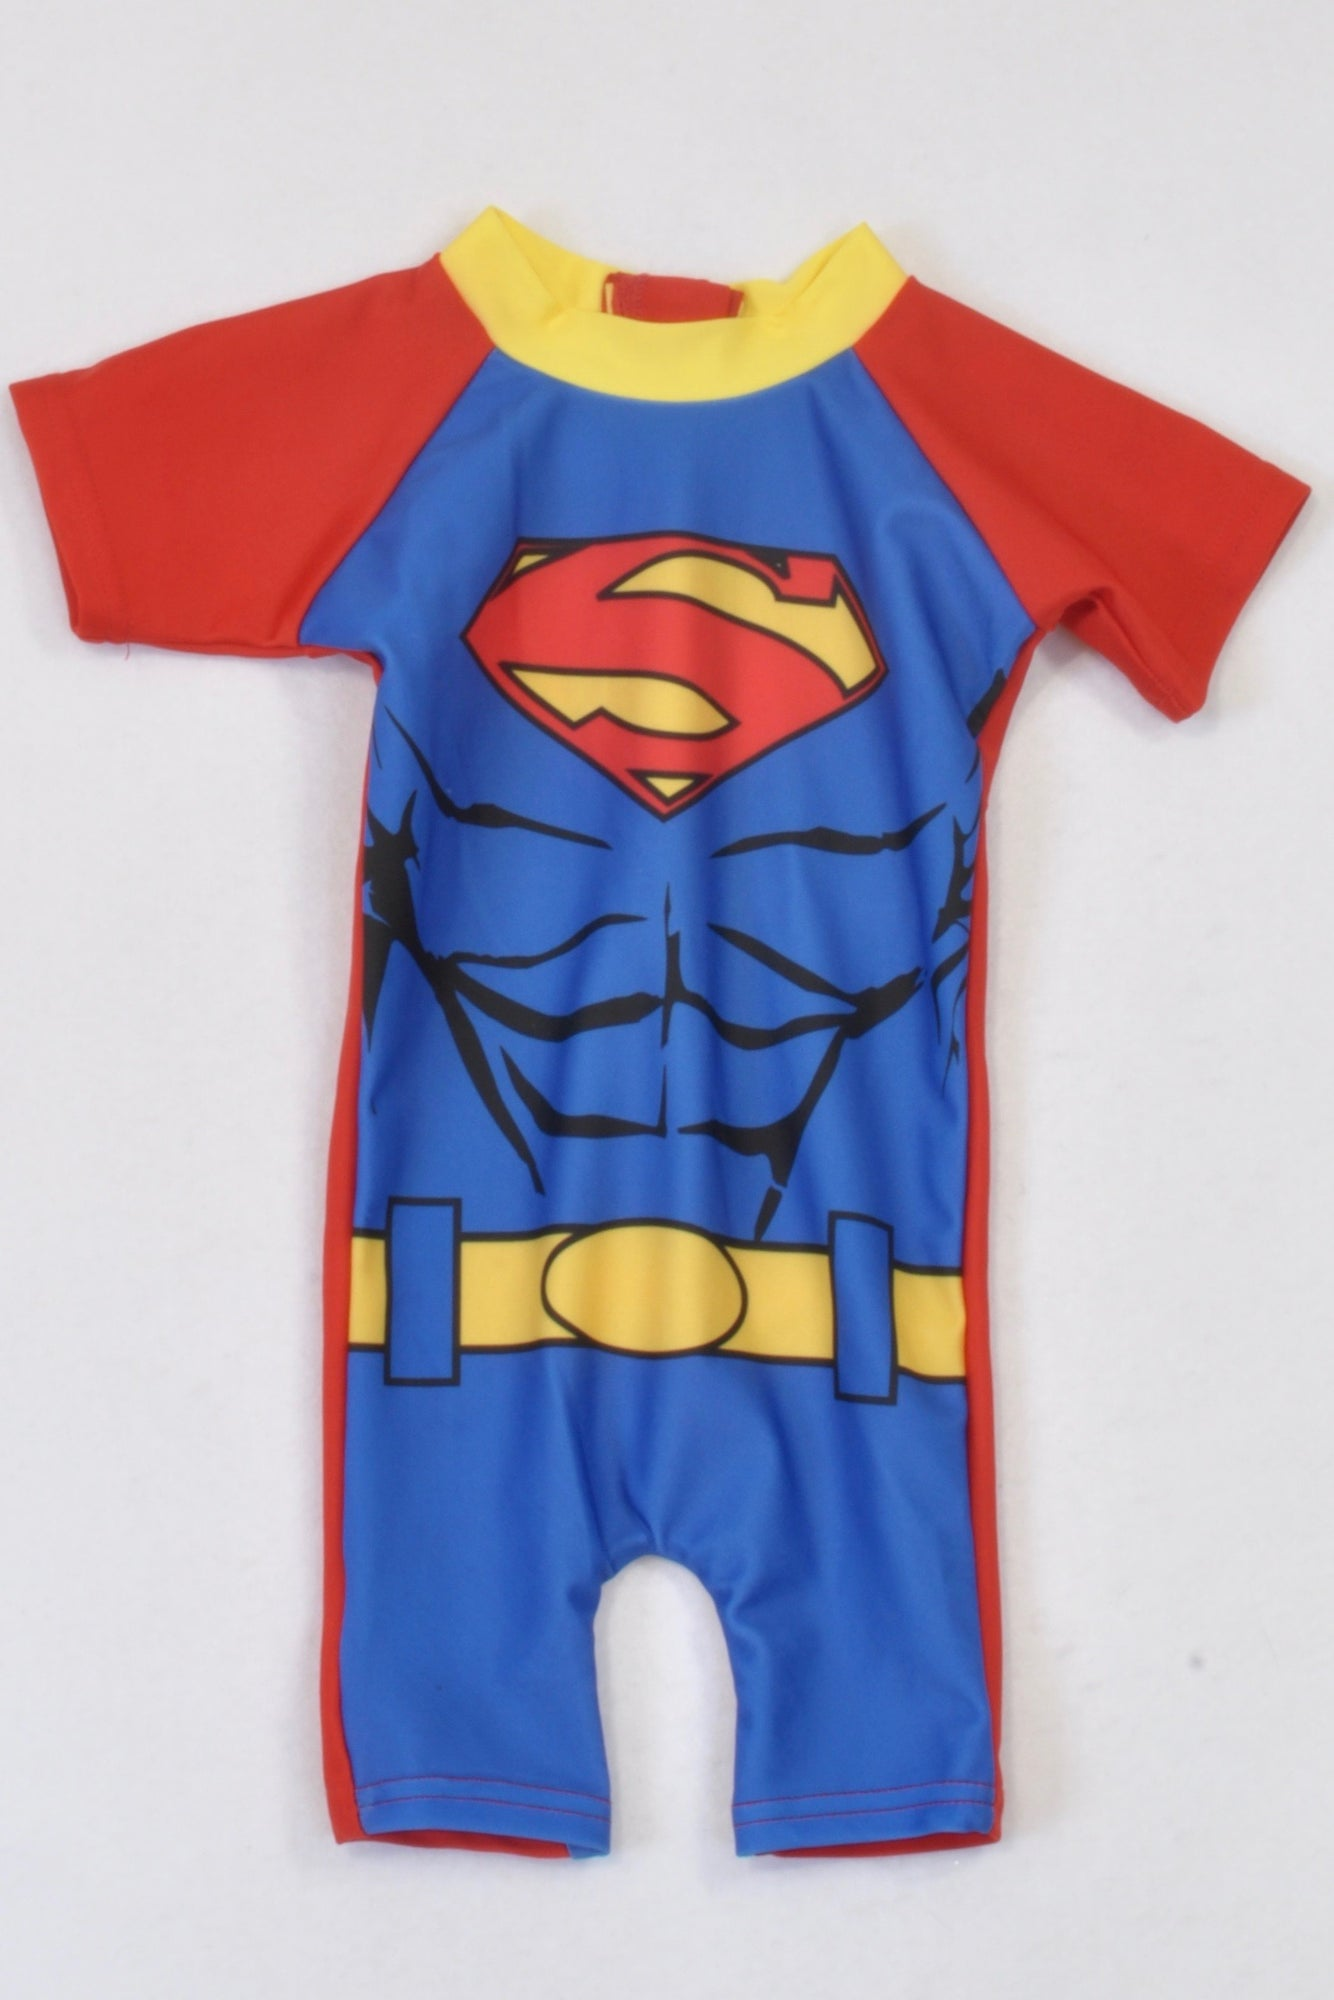 Woolworths Superman Swimsuit Boys 0-3 months